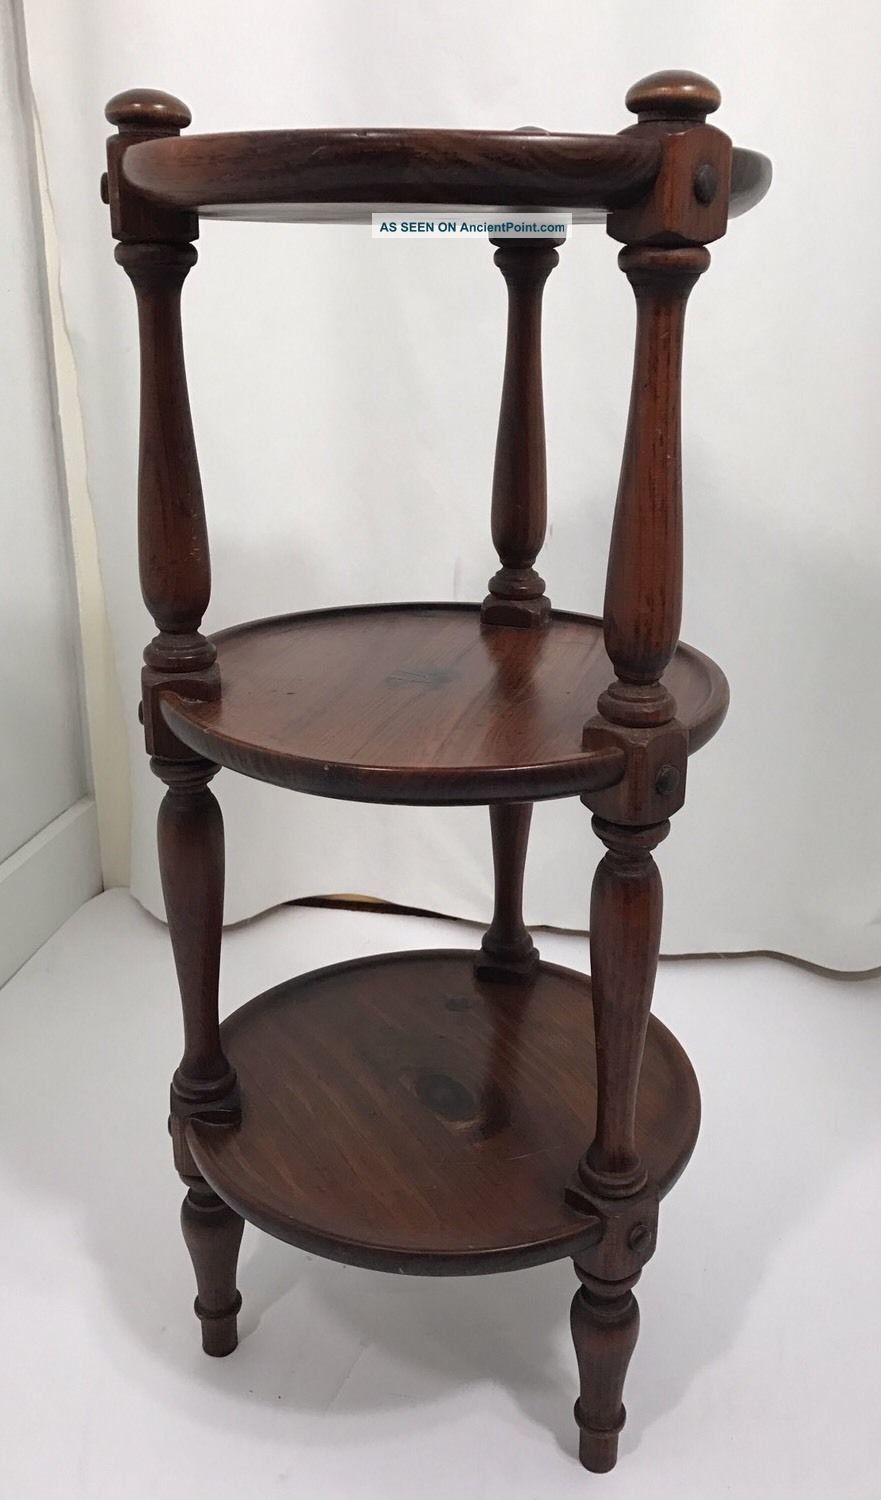 Ethan Allen Round Pine Wood 3 Tier Table Vintage Post-1950 photo